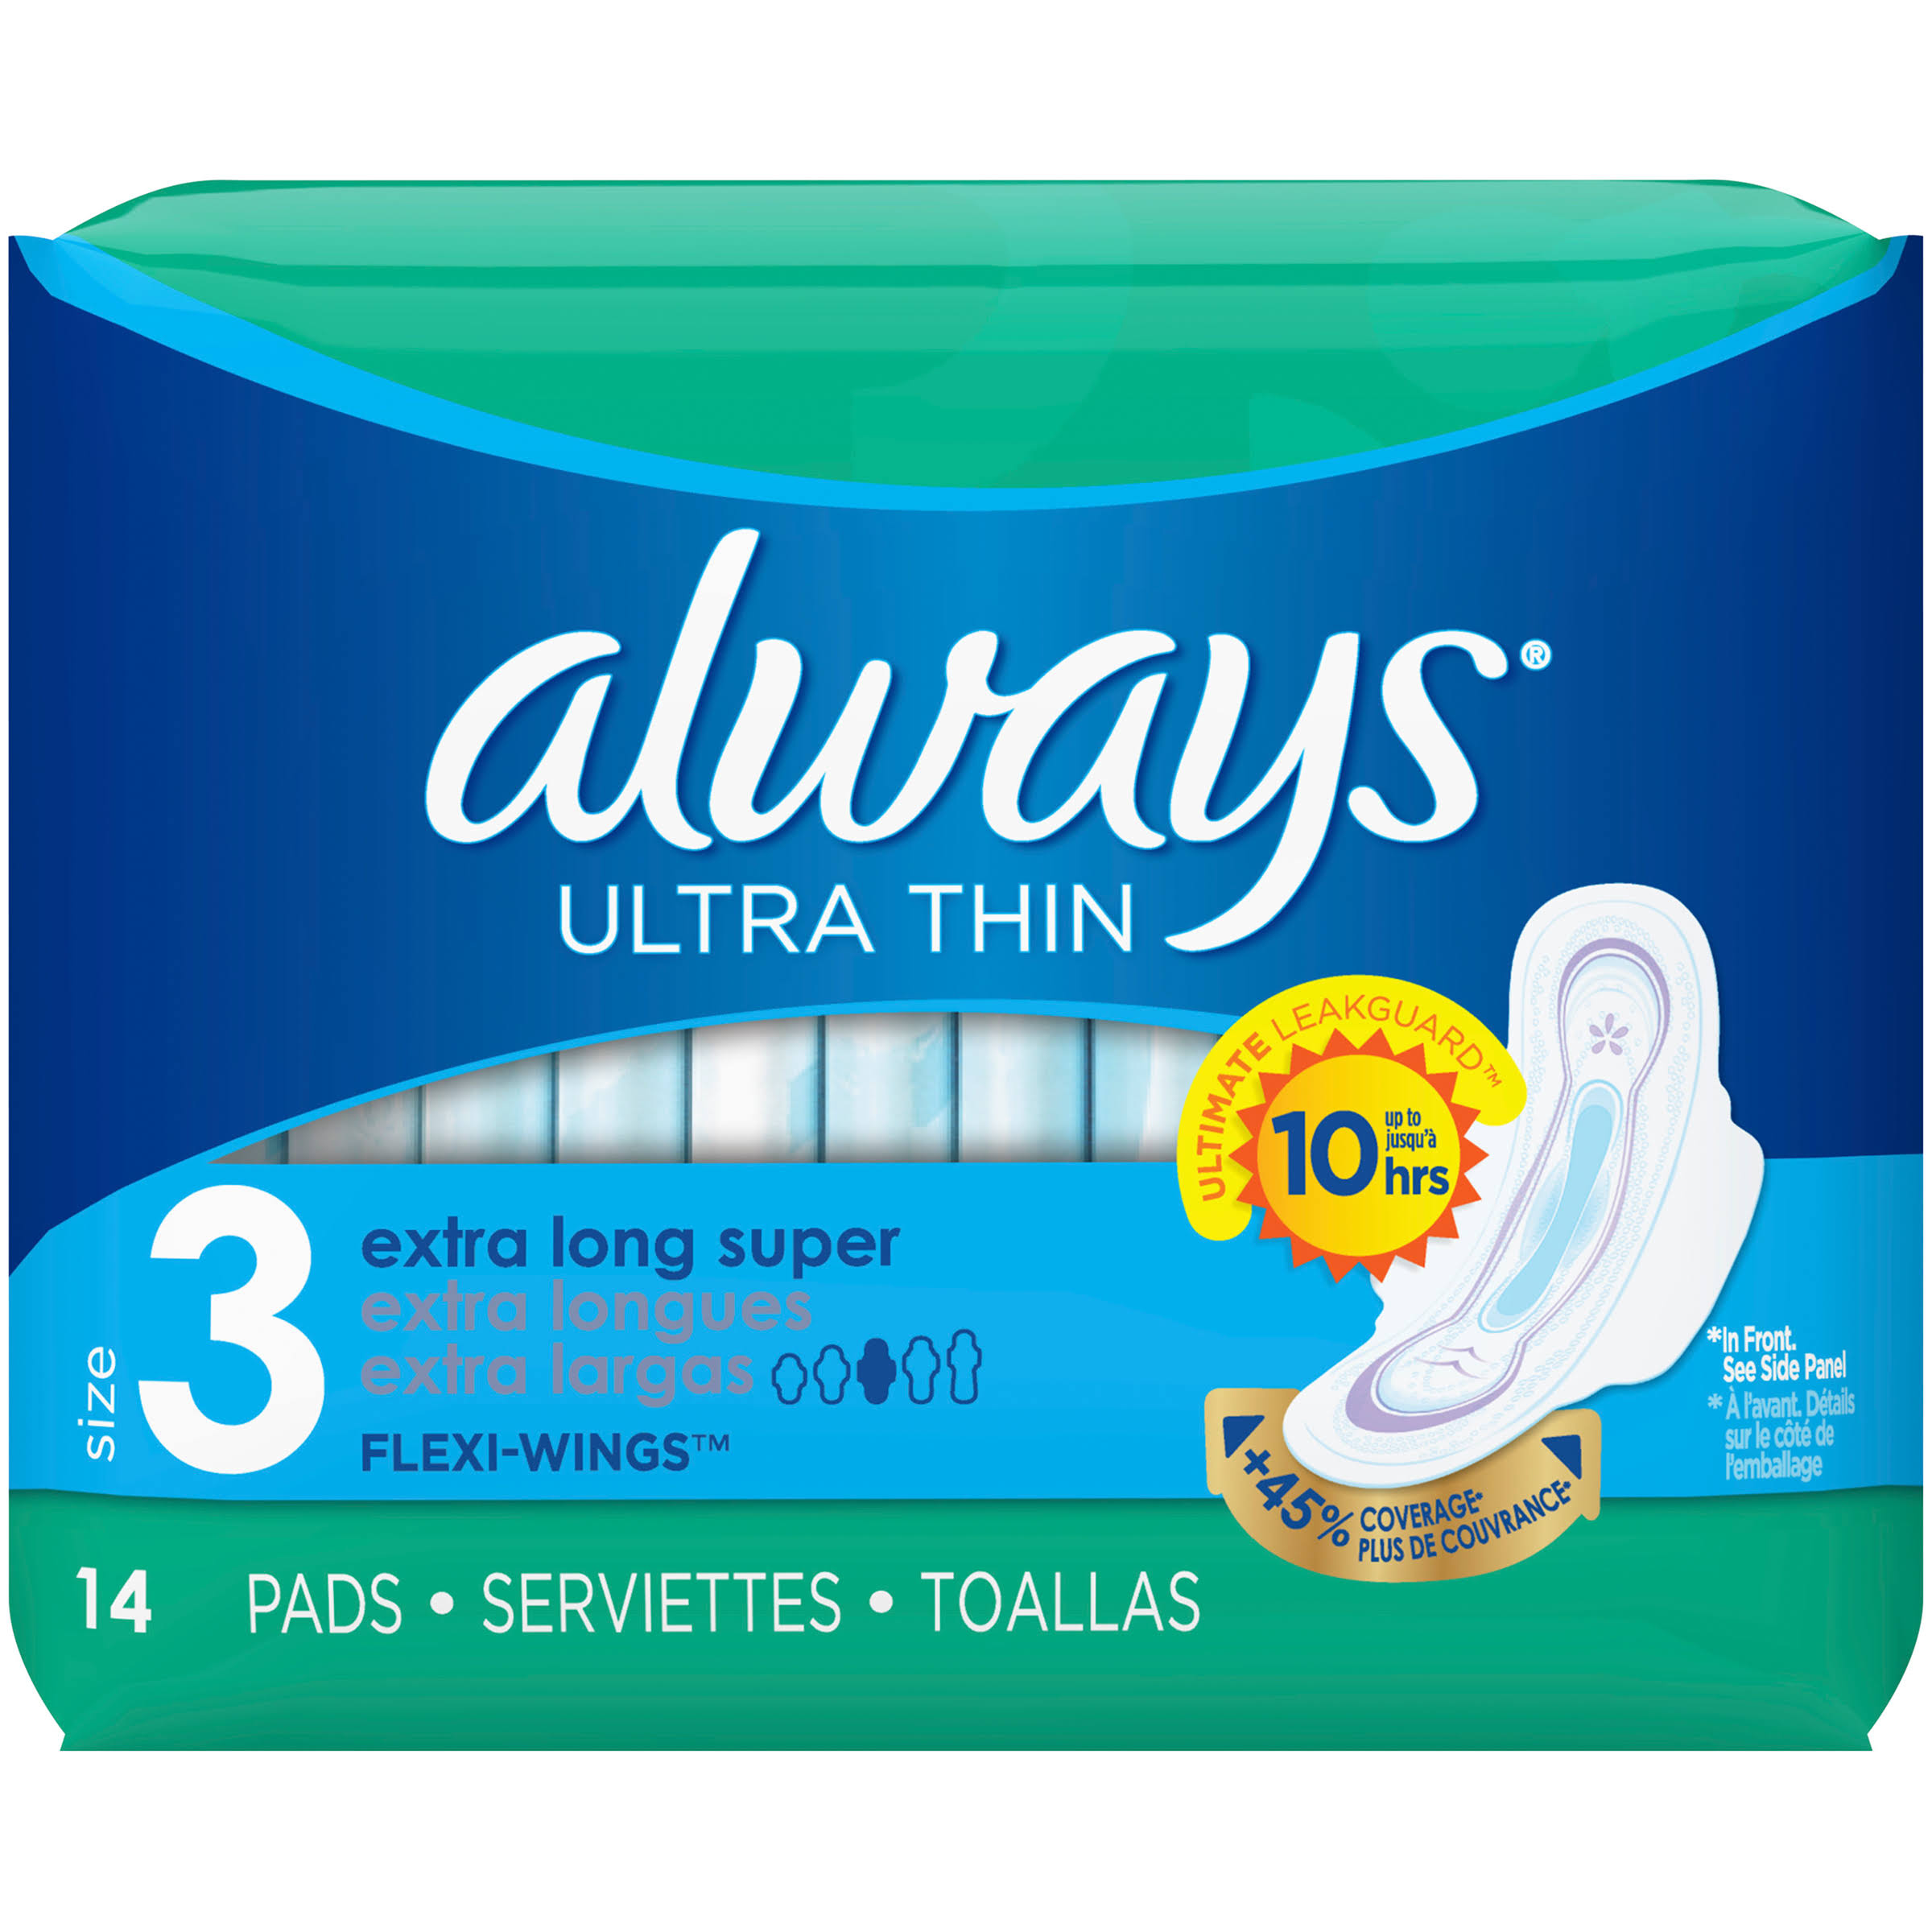 Always Ultra Thin Size 3 Extra Long Super Pads - 14pcs